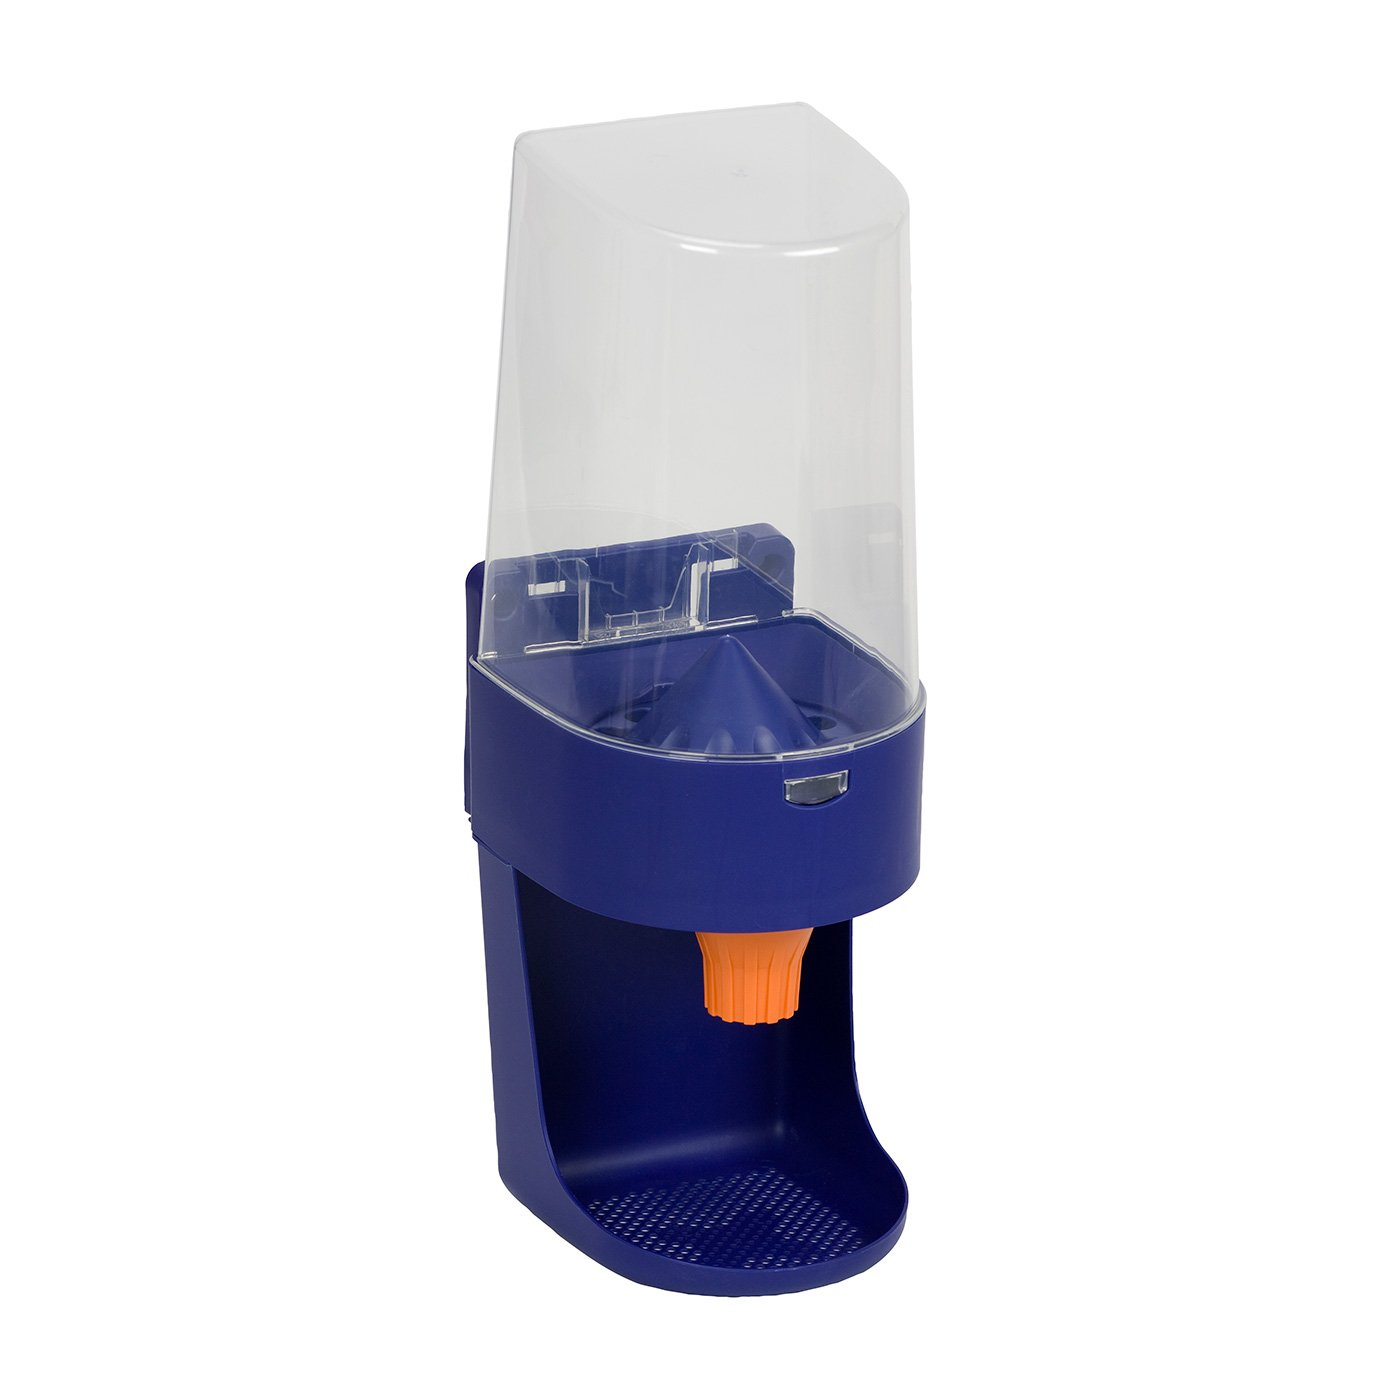 PIP 267-HPD100 Ear Plug Dispenser, Large